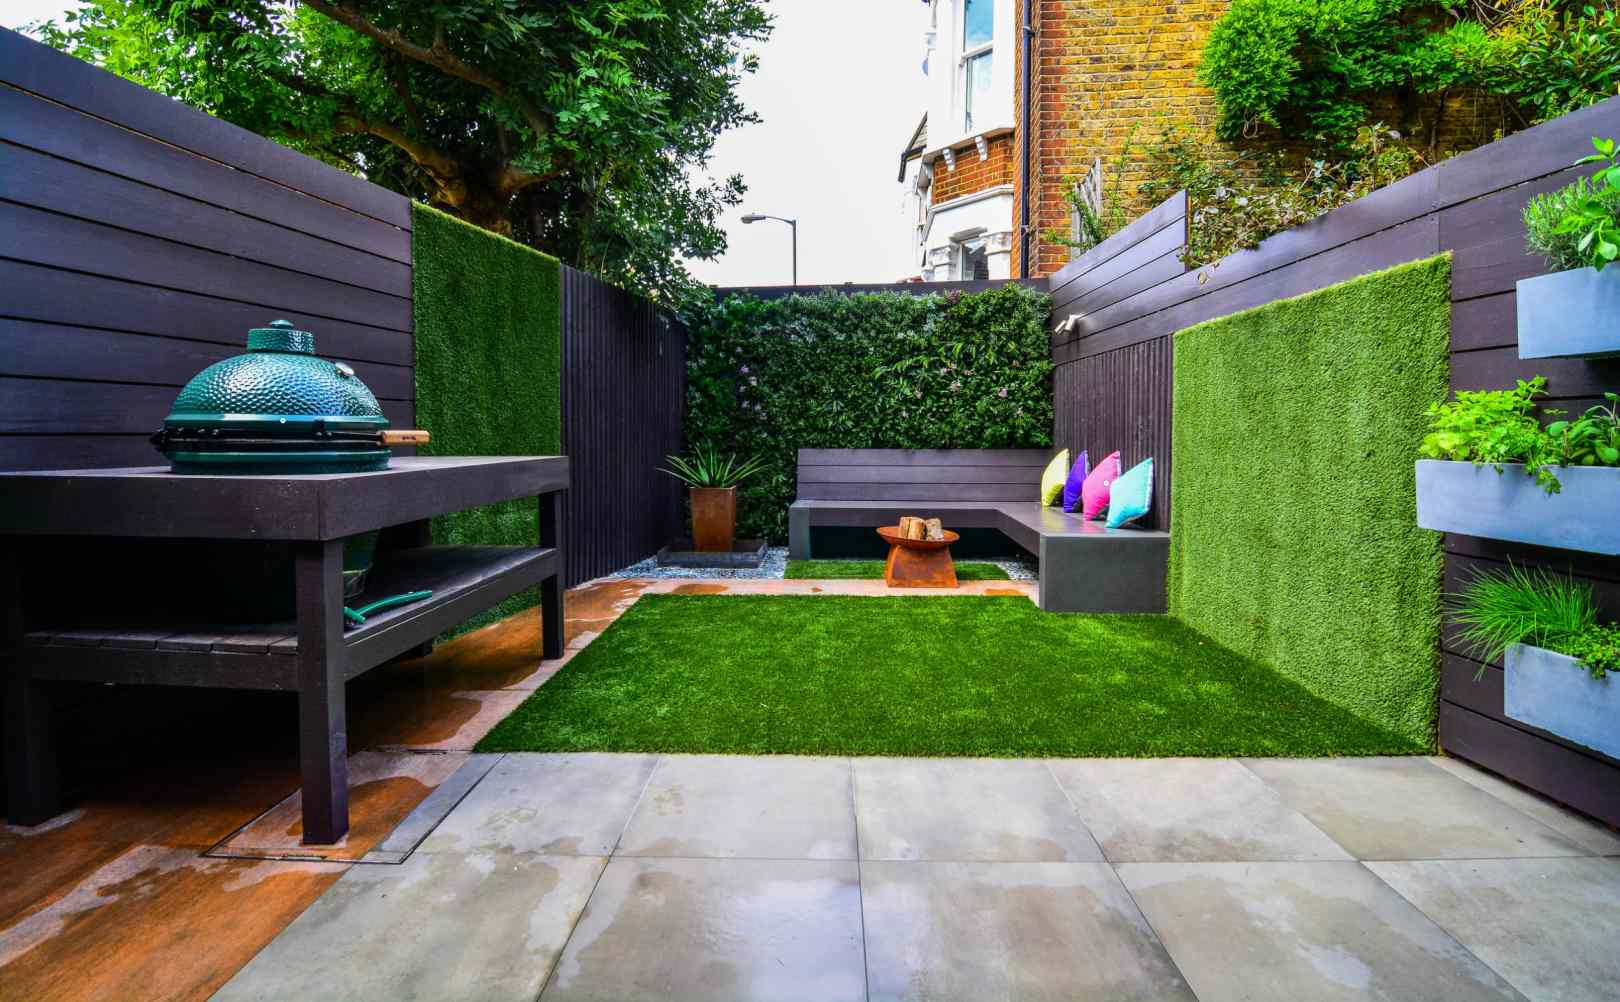 Backyard with grass growing as walls.